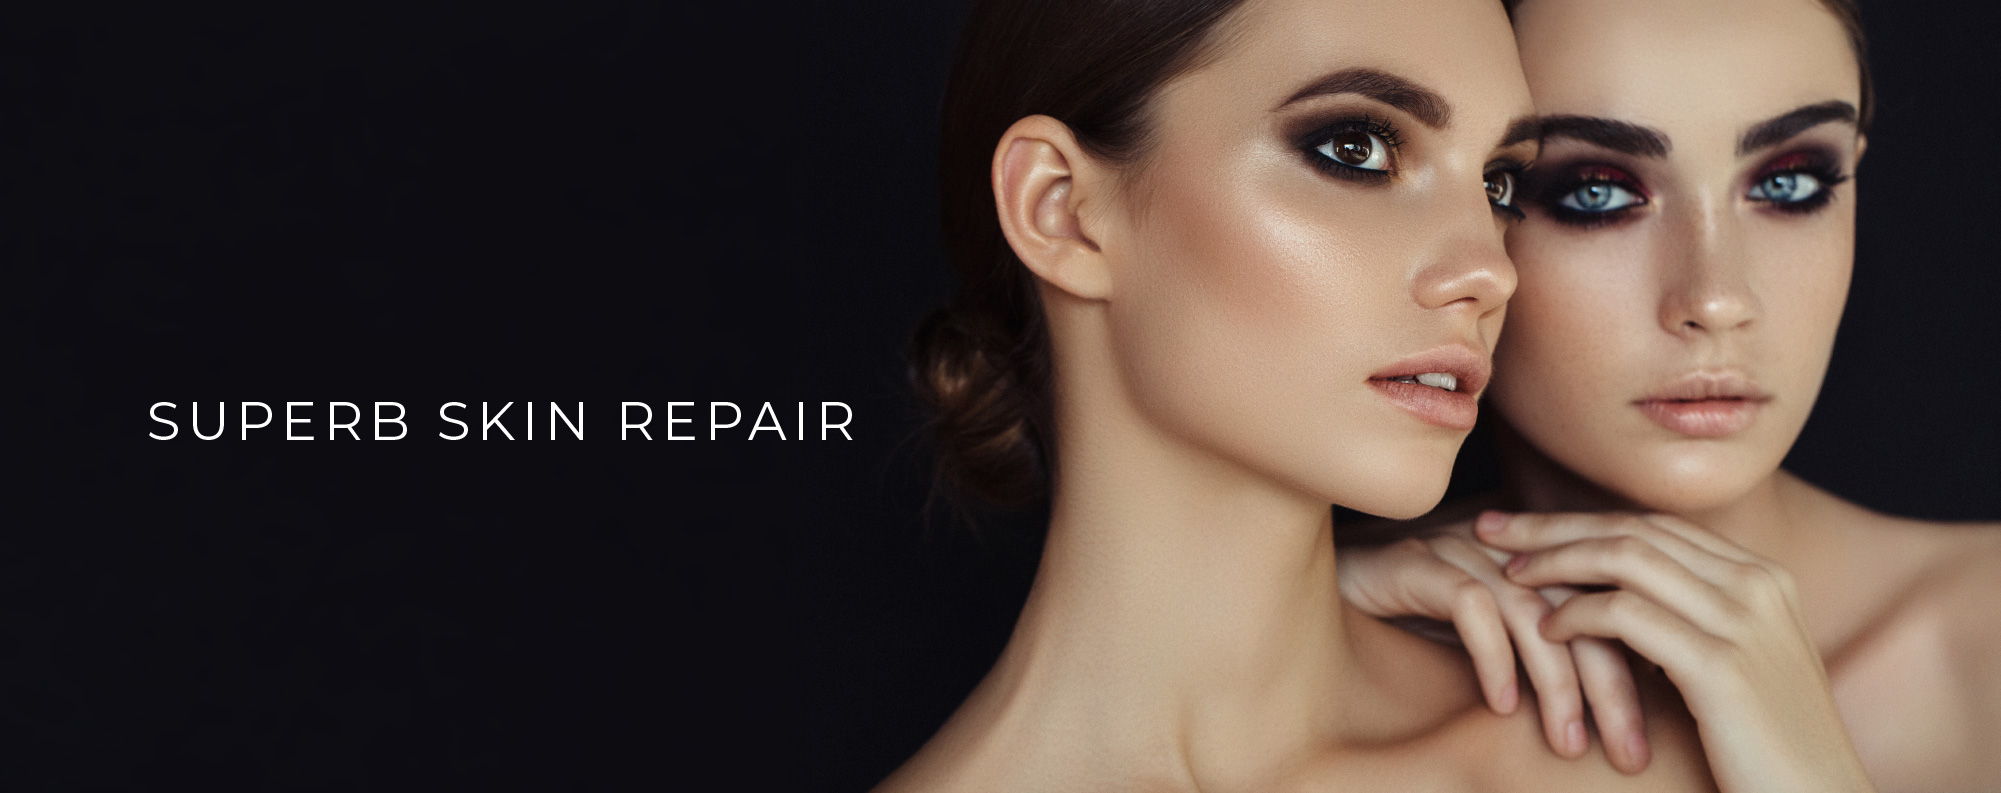 Superb Skin Repair